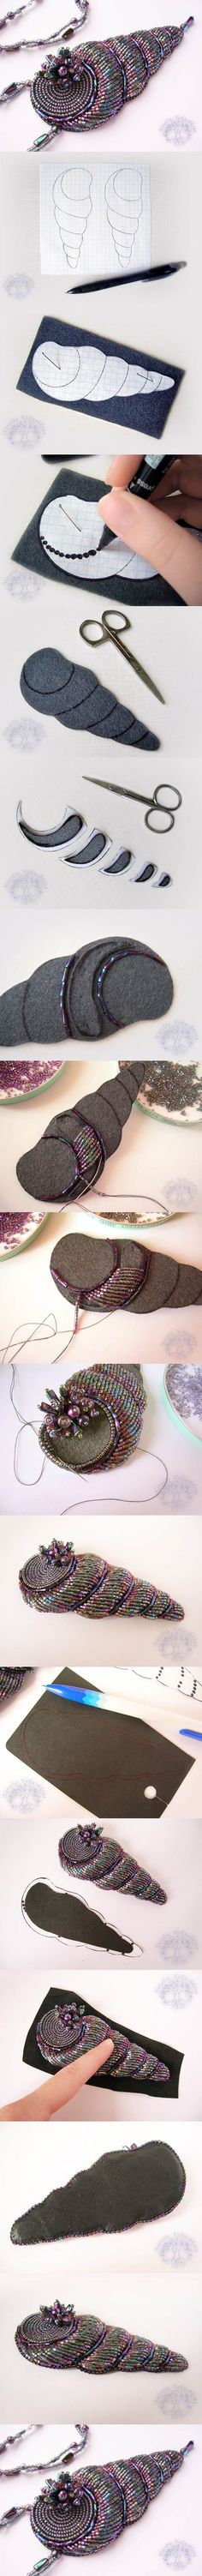 Embroidery jewelry tutorial beading techniques 59 Ideas for 2019 Bead Embroidery Tutorial, Bead Embroidery Jewelry, Beaded Embroidery, Beaded Jewelry, Embroidery Thread, Beaded Bracelet, Seed Bead Tutorials, Beading Tutorials, Beading Patterns